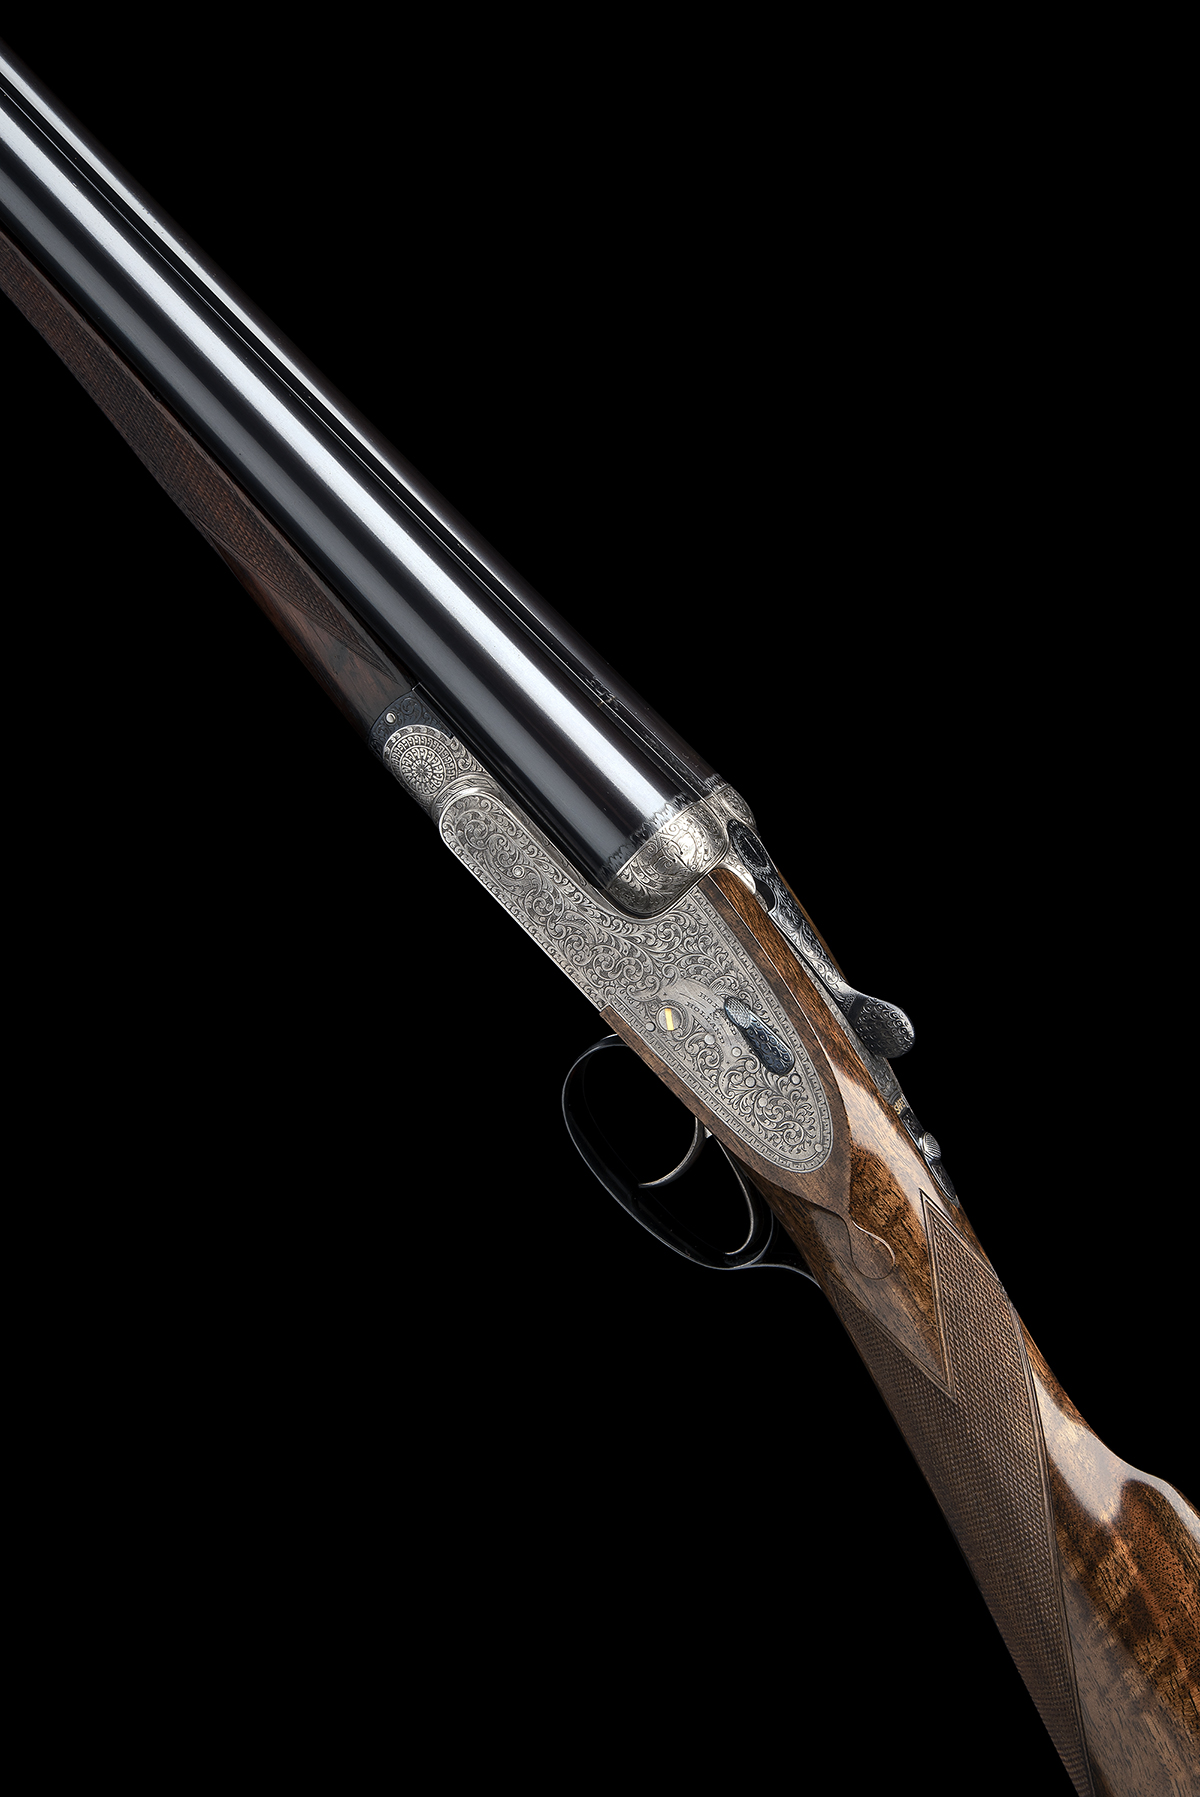 HOLLAND & HOLLAND A 12-BORE 'ROYAL' SELF-OPENING HAND-DETACHABLE SIDELOCK EJECTOR, serial no. 33347,